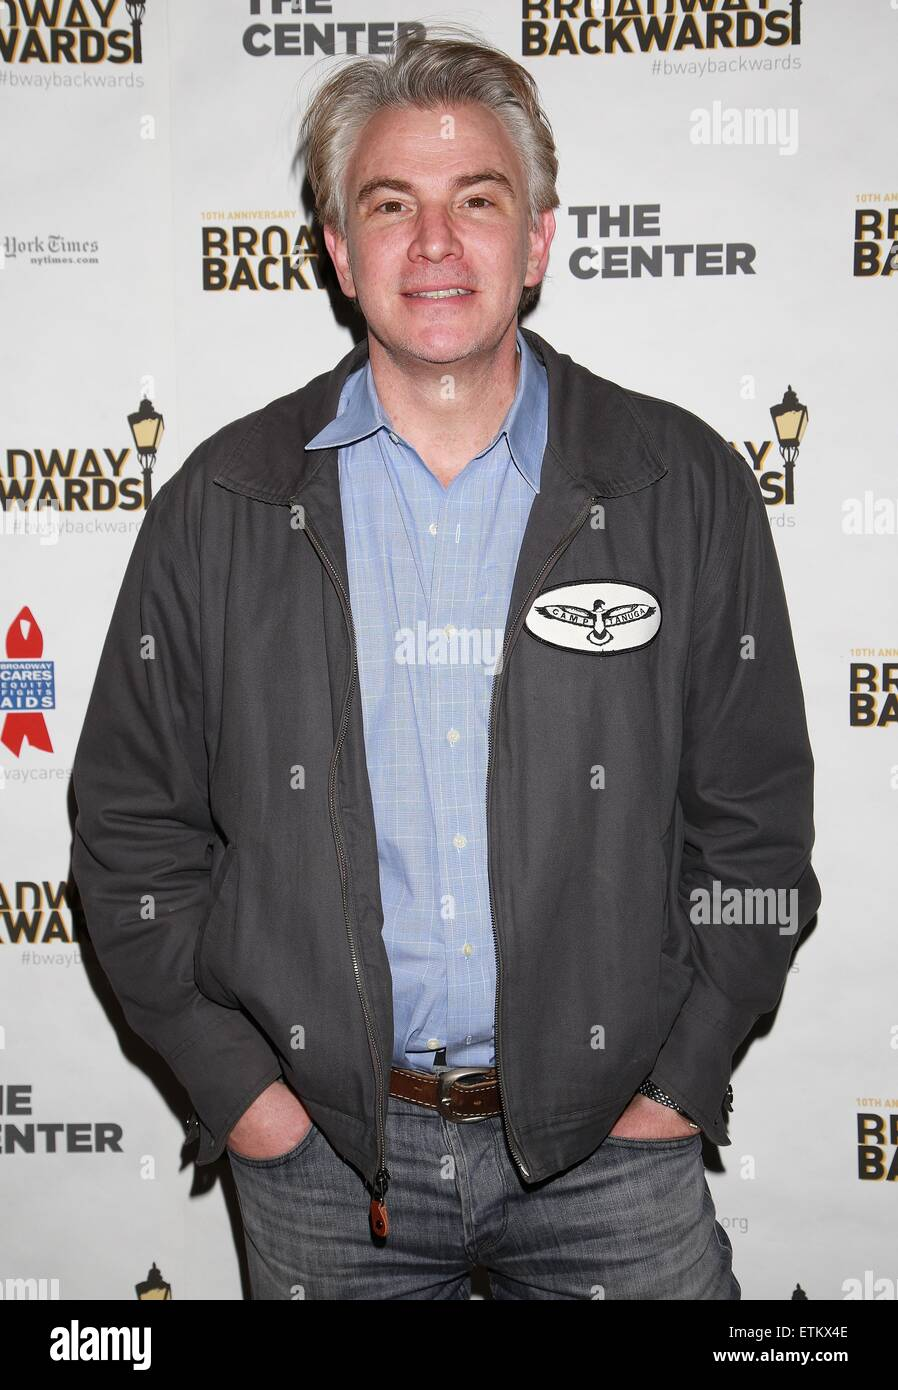 After party for 10th Annual Broadway Backwards held at John's Pizzeria - Arrivals.  Featuring: Douglas Sills Where: Stock Photo